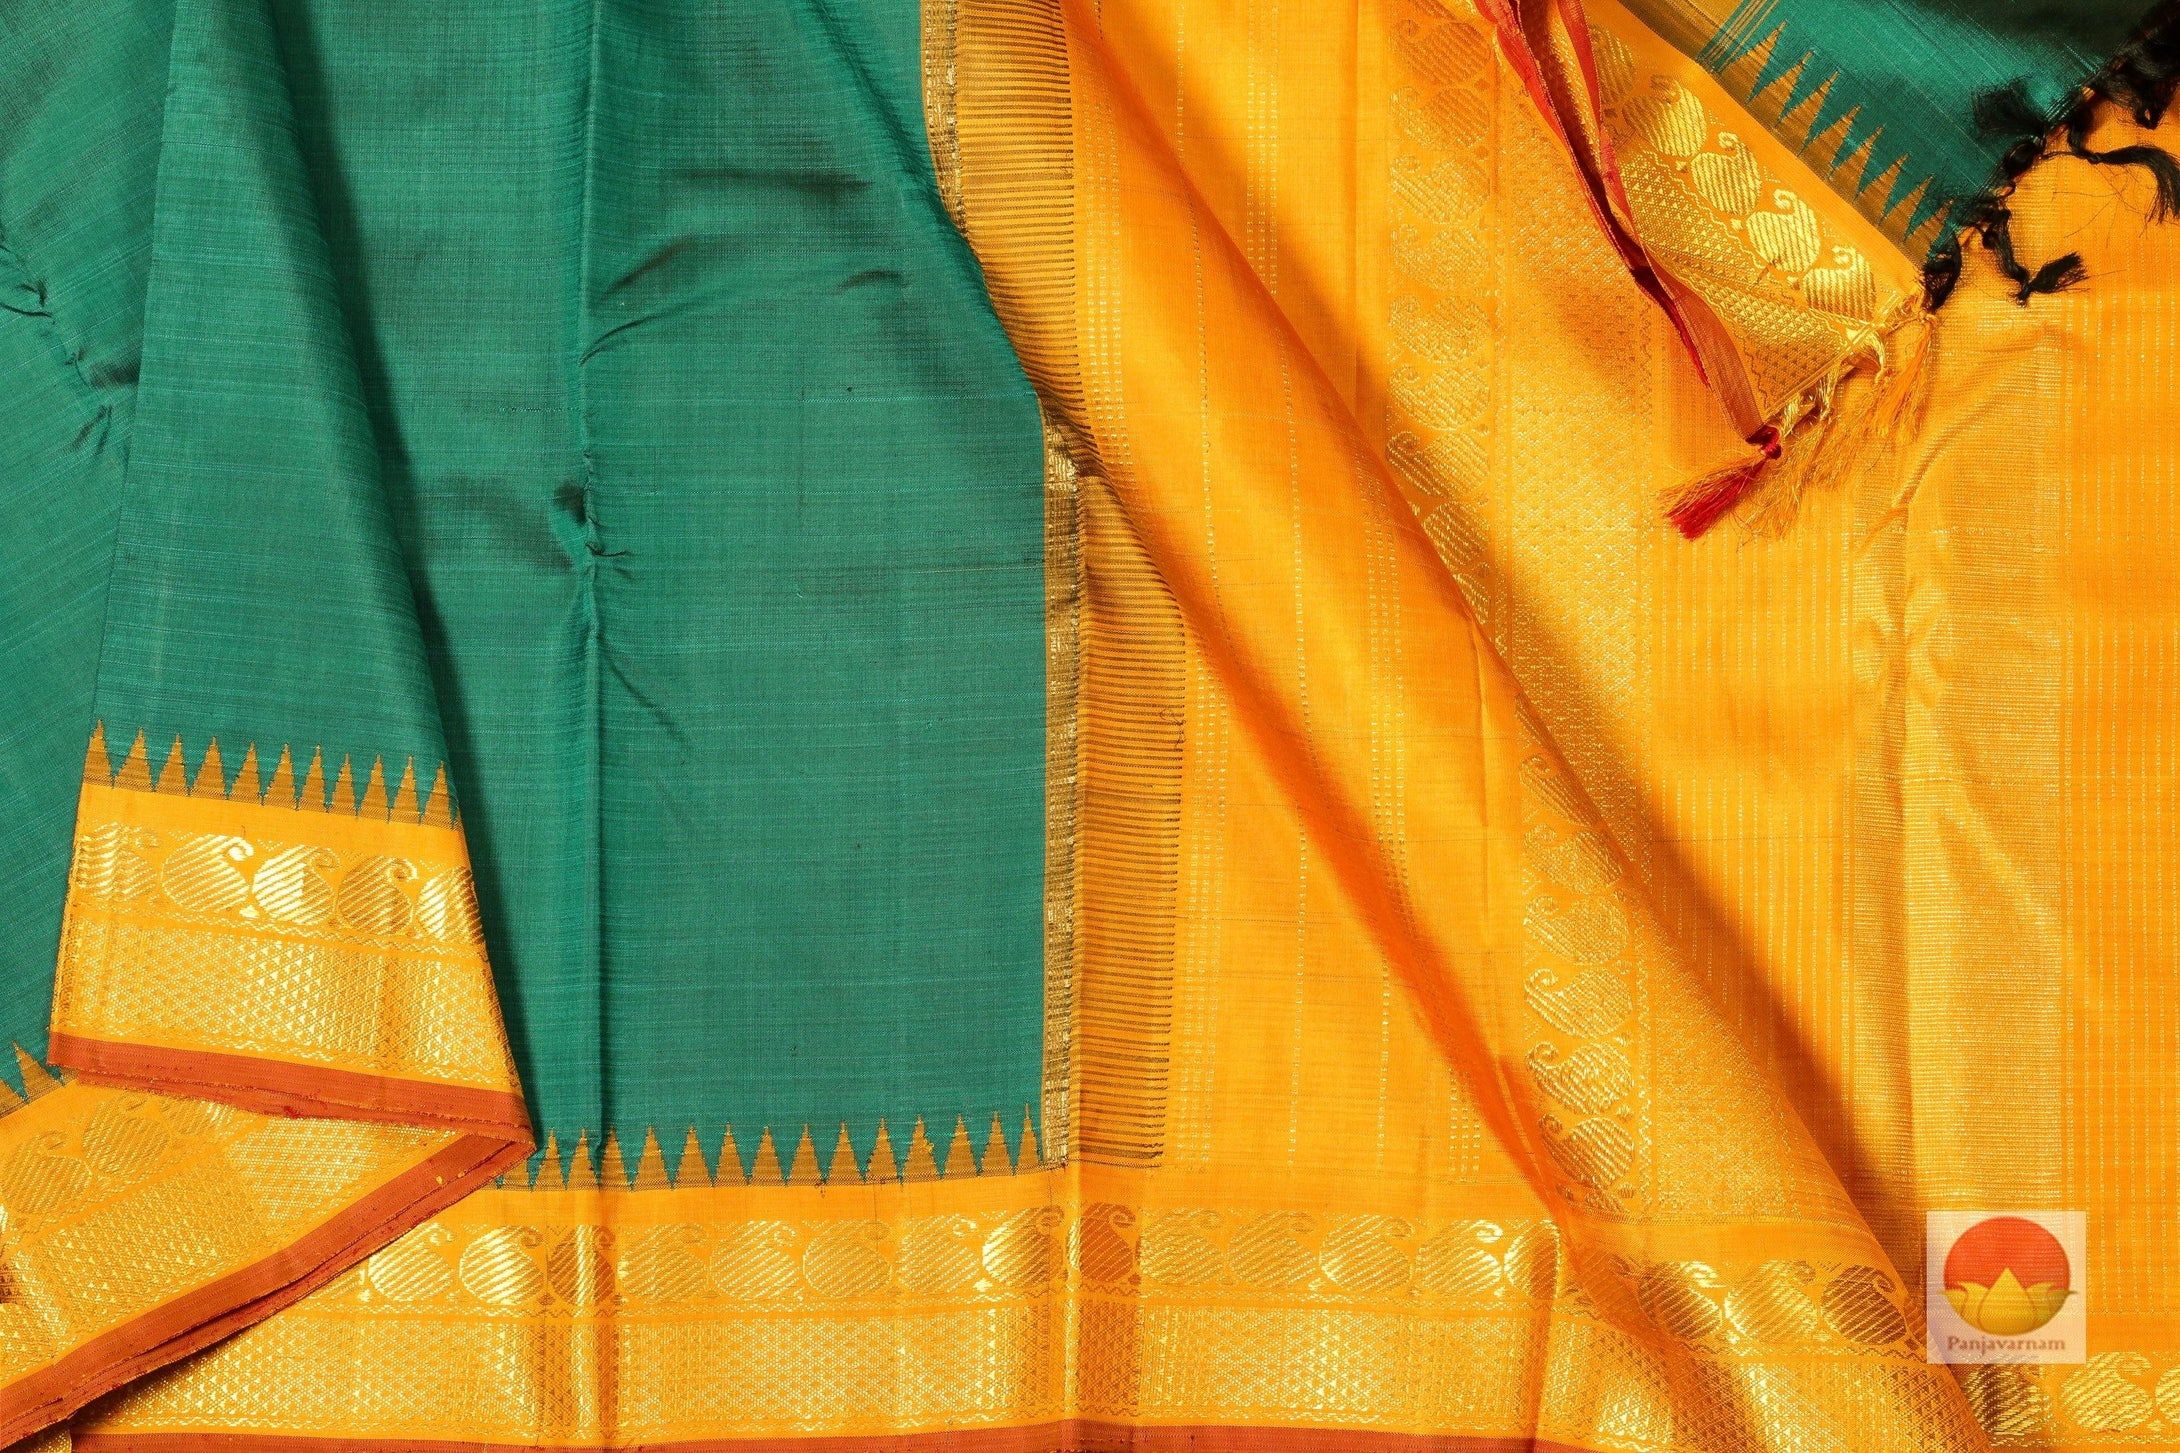 body, border and pallu of emerald green kanjivaram silk saree